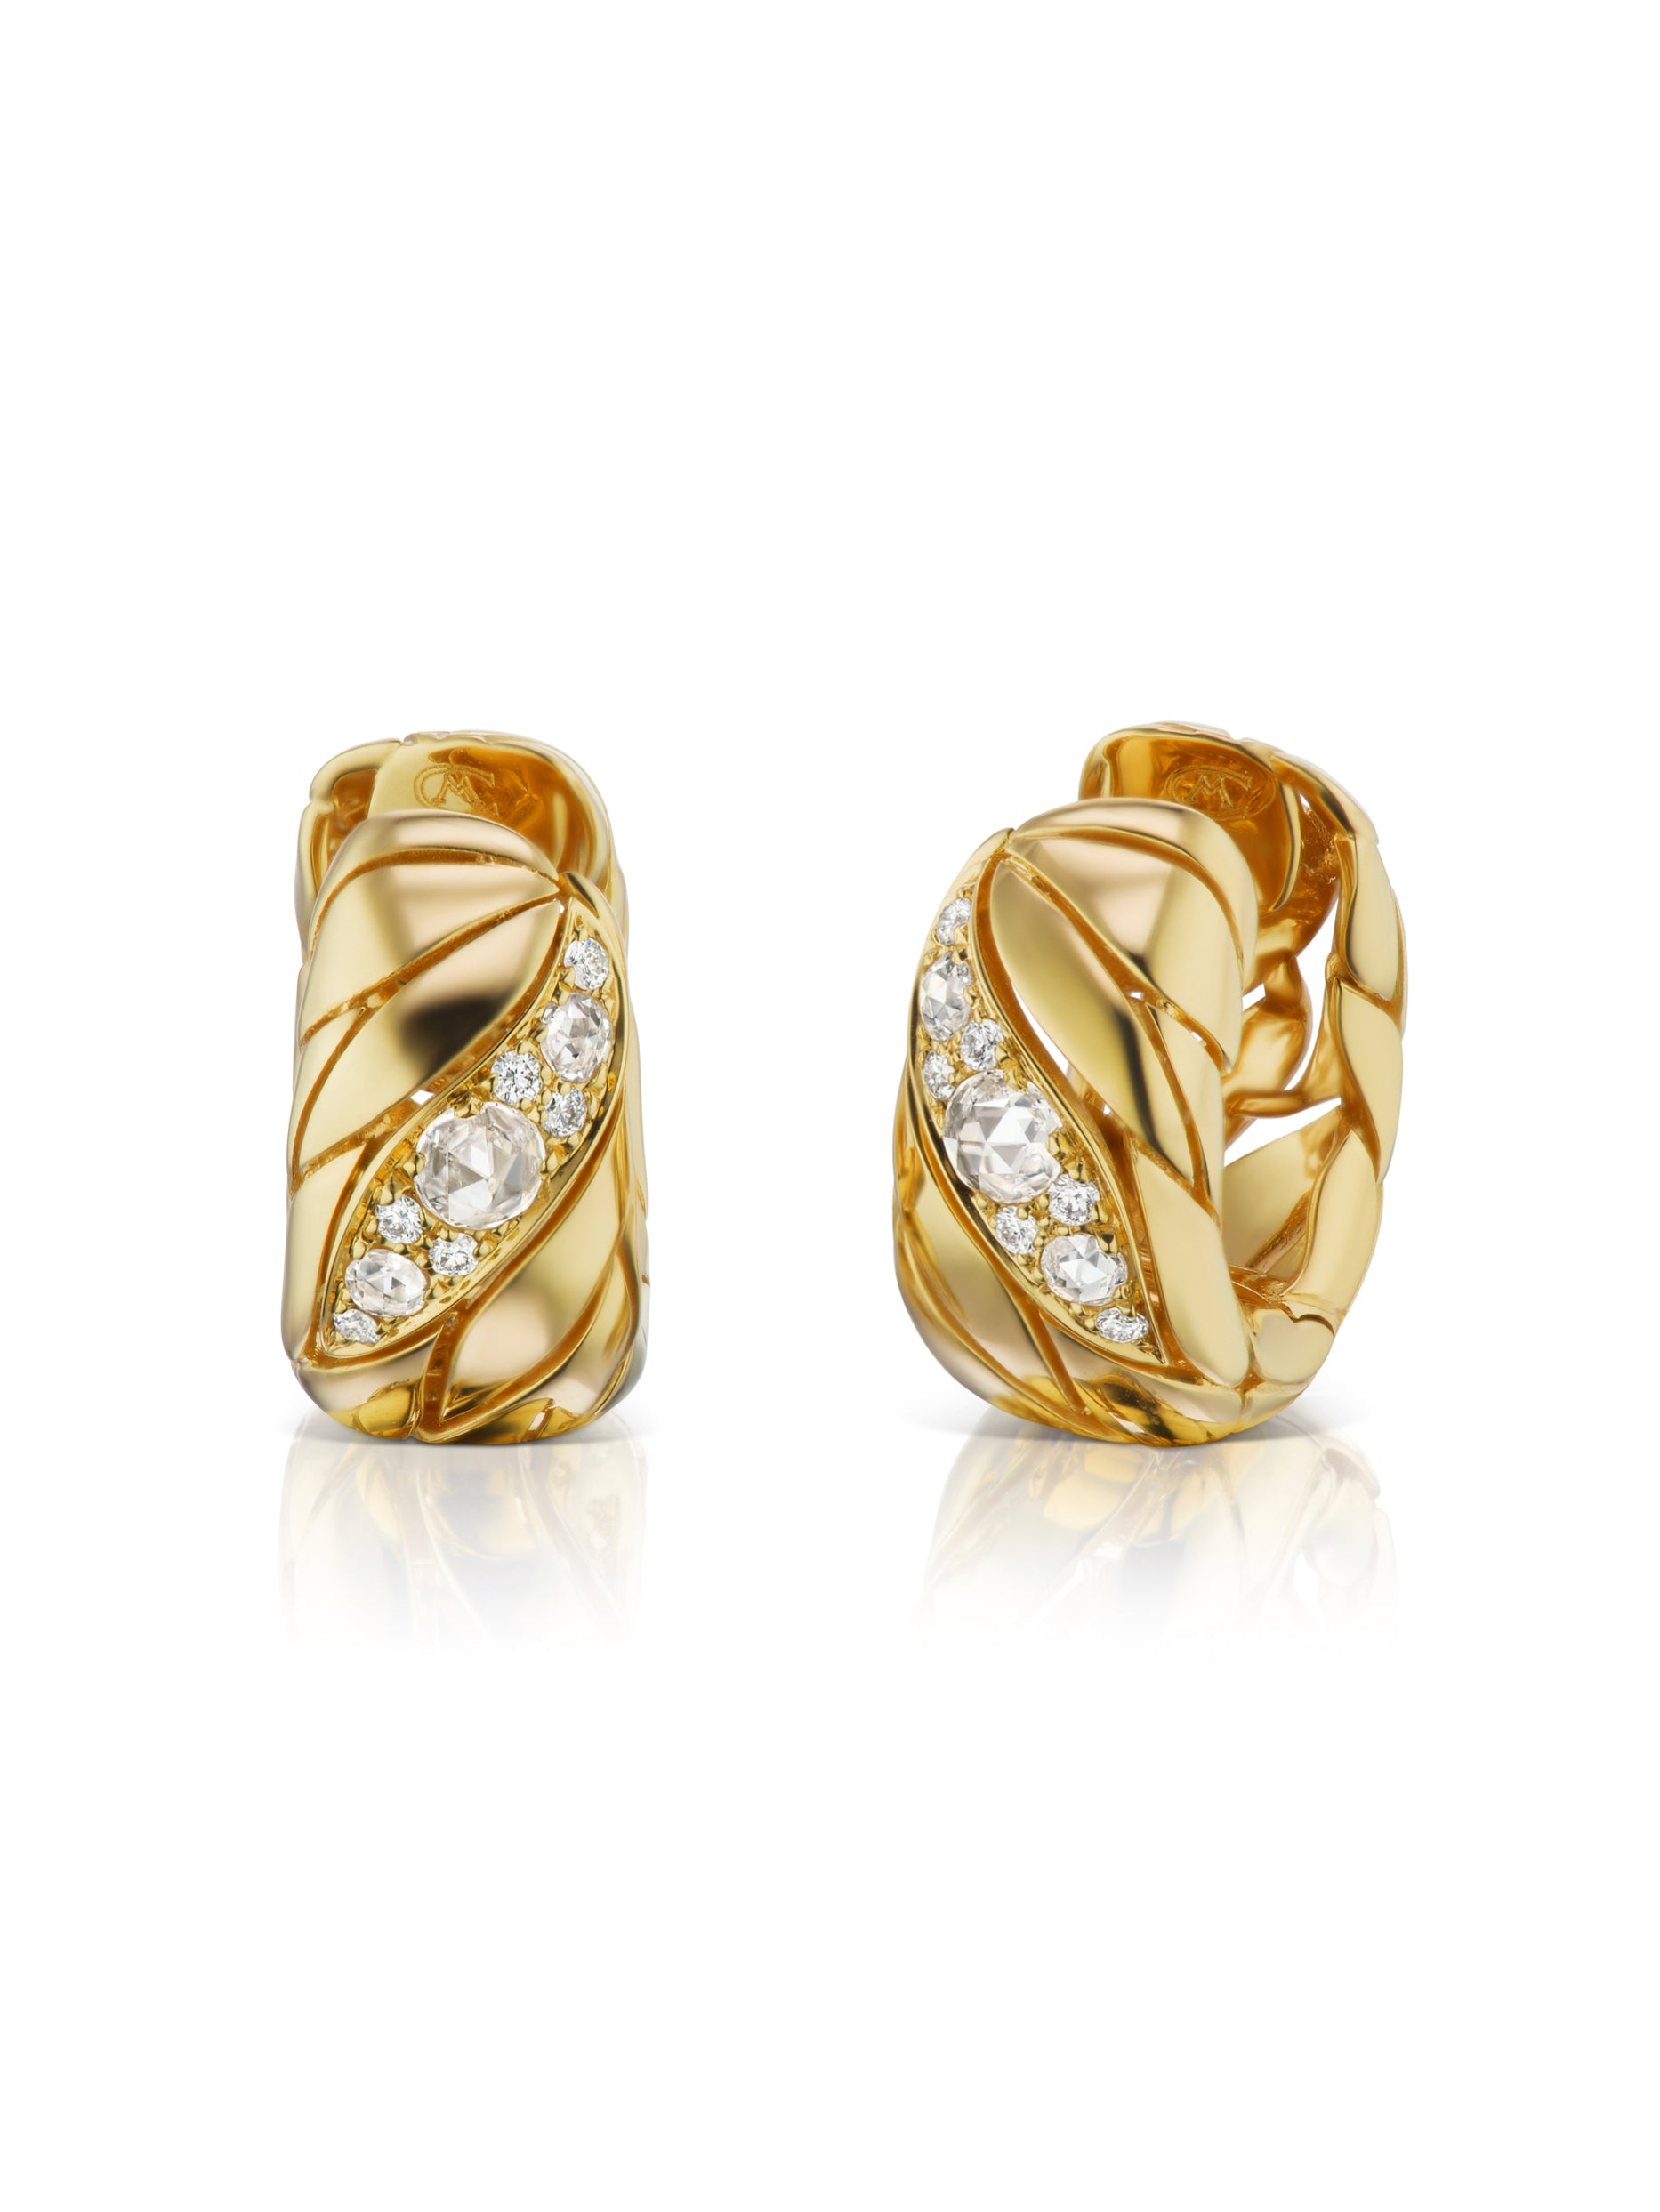 Petal Gold and Diamond Huggie Earrings